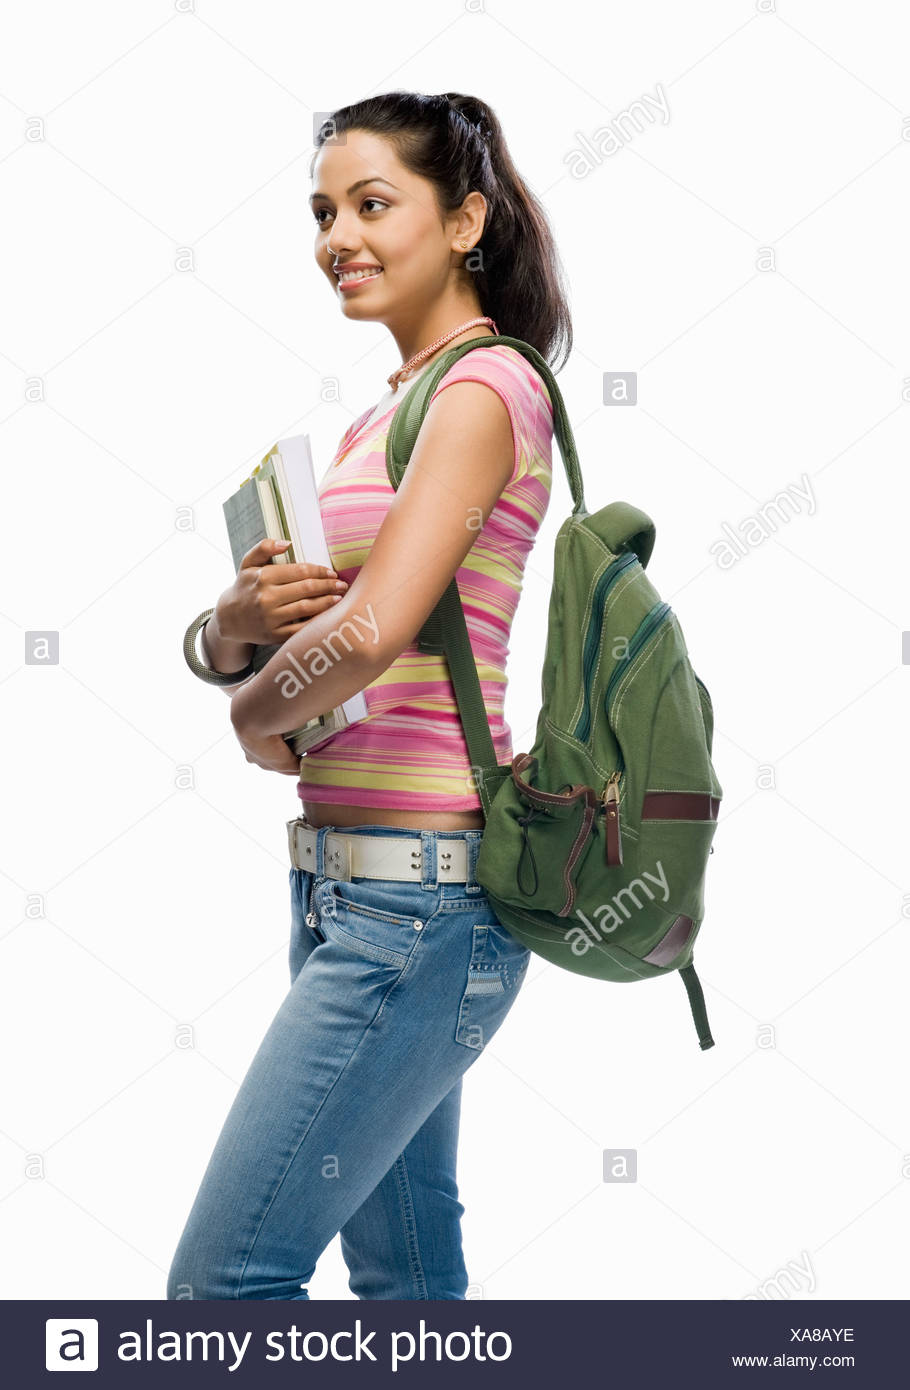 Female college student holding files - Stock Image